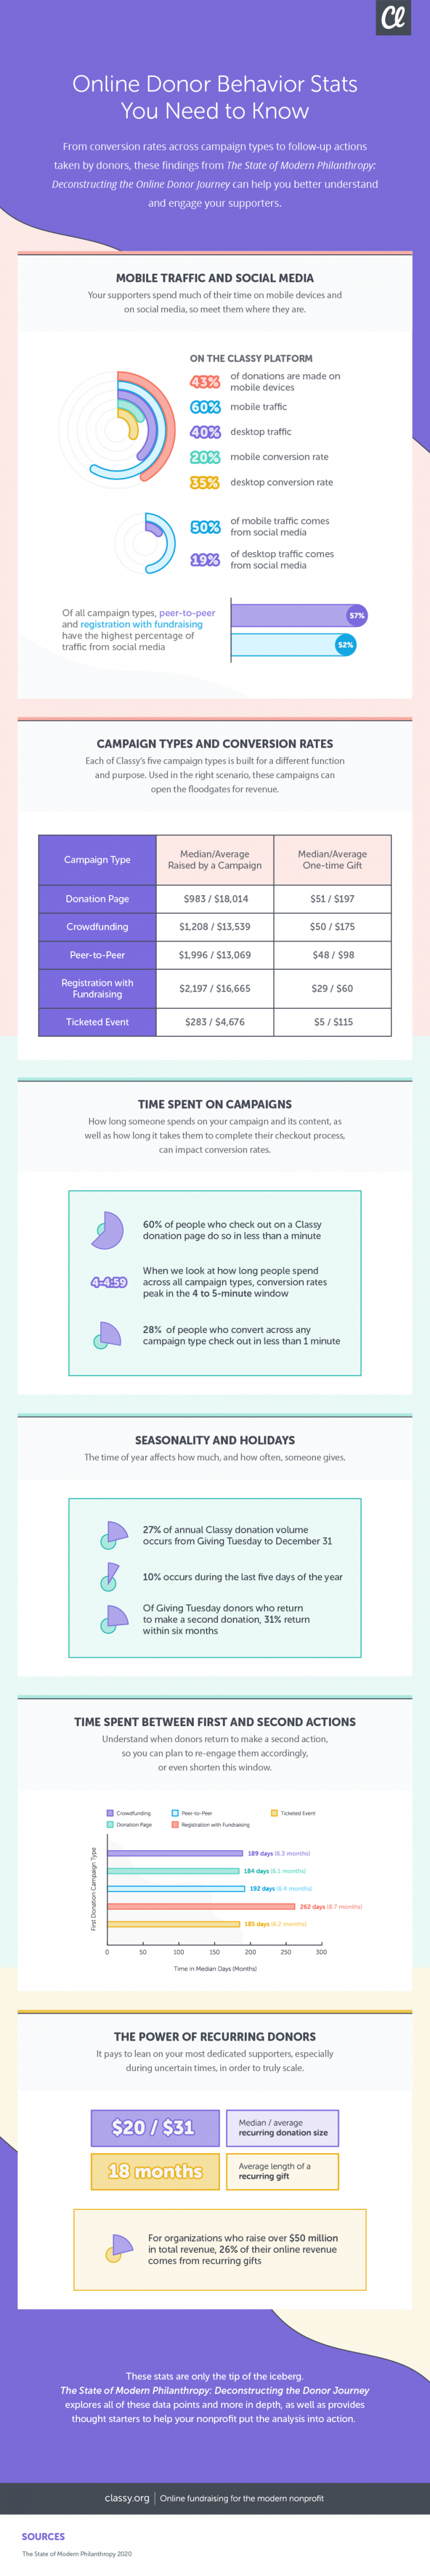 Infographic: Online Donor Behavior Statistics You Need to Know